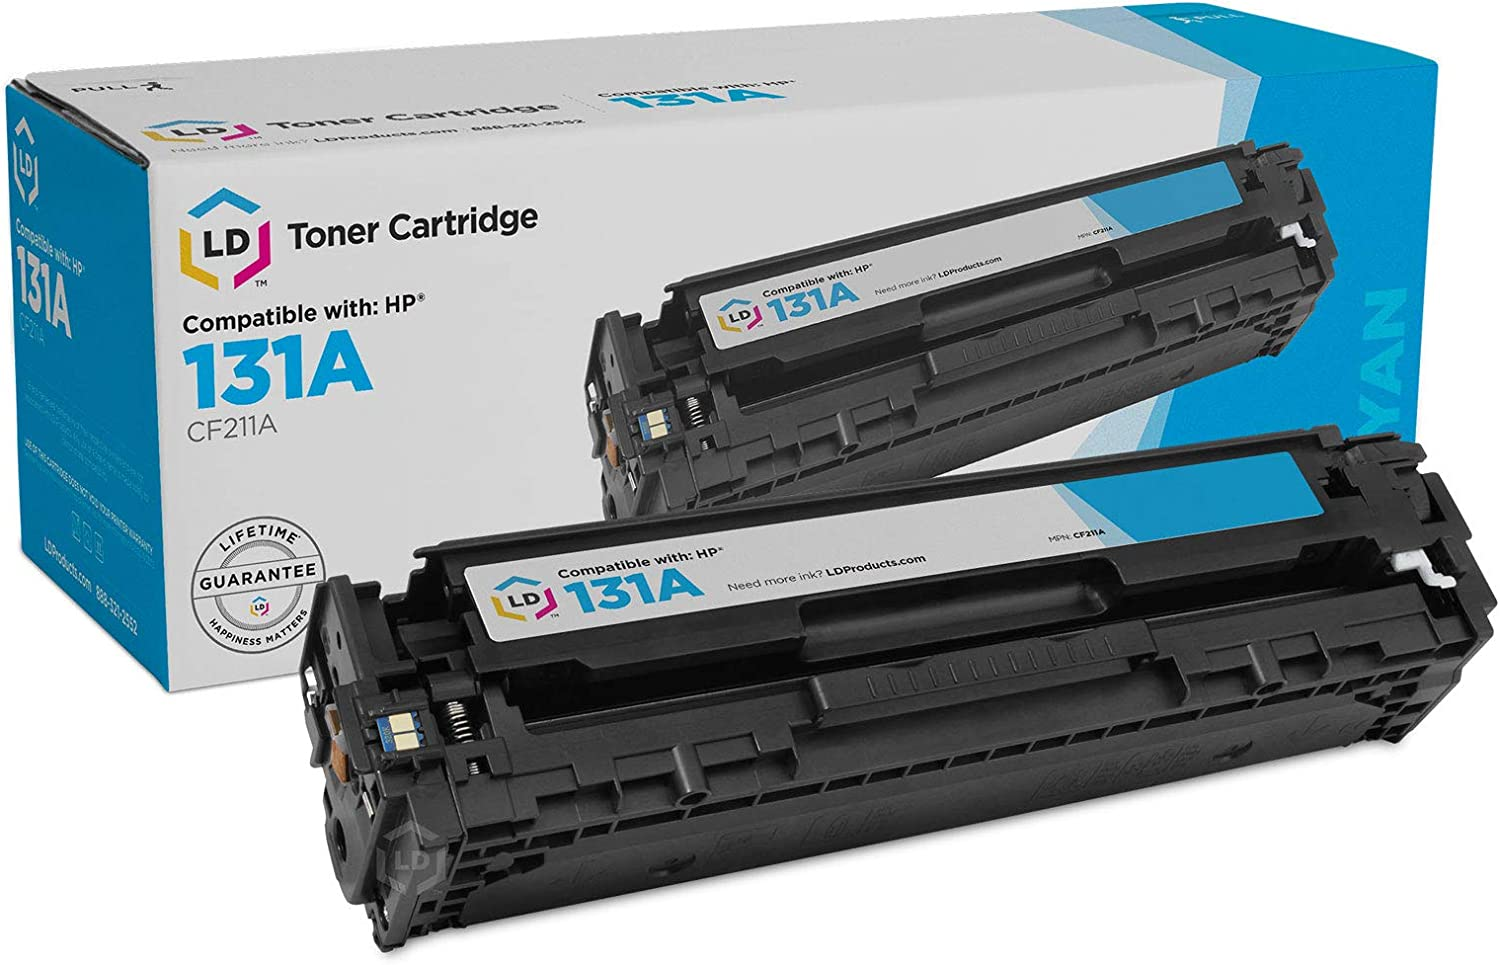 LD Remanufactured Toner Cartridge Replacement for HP 131A CF211A (Cyan)